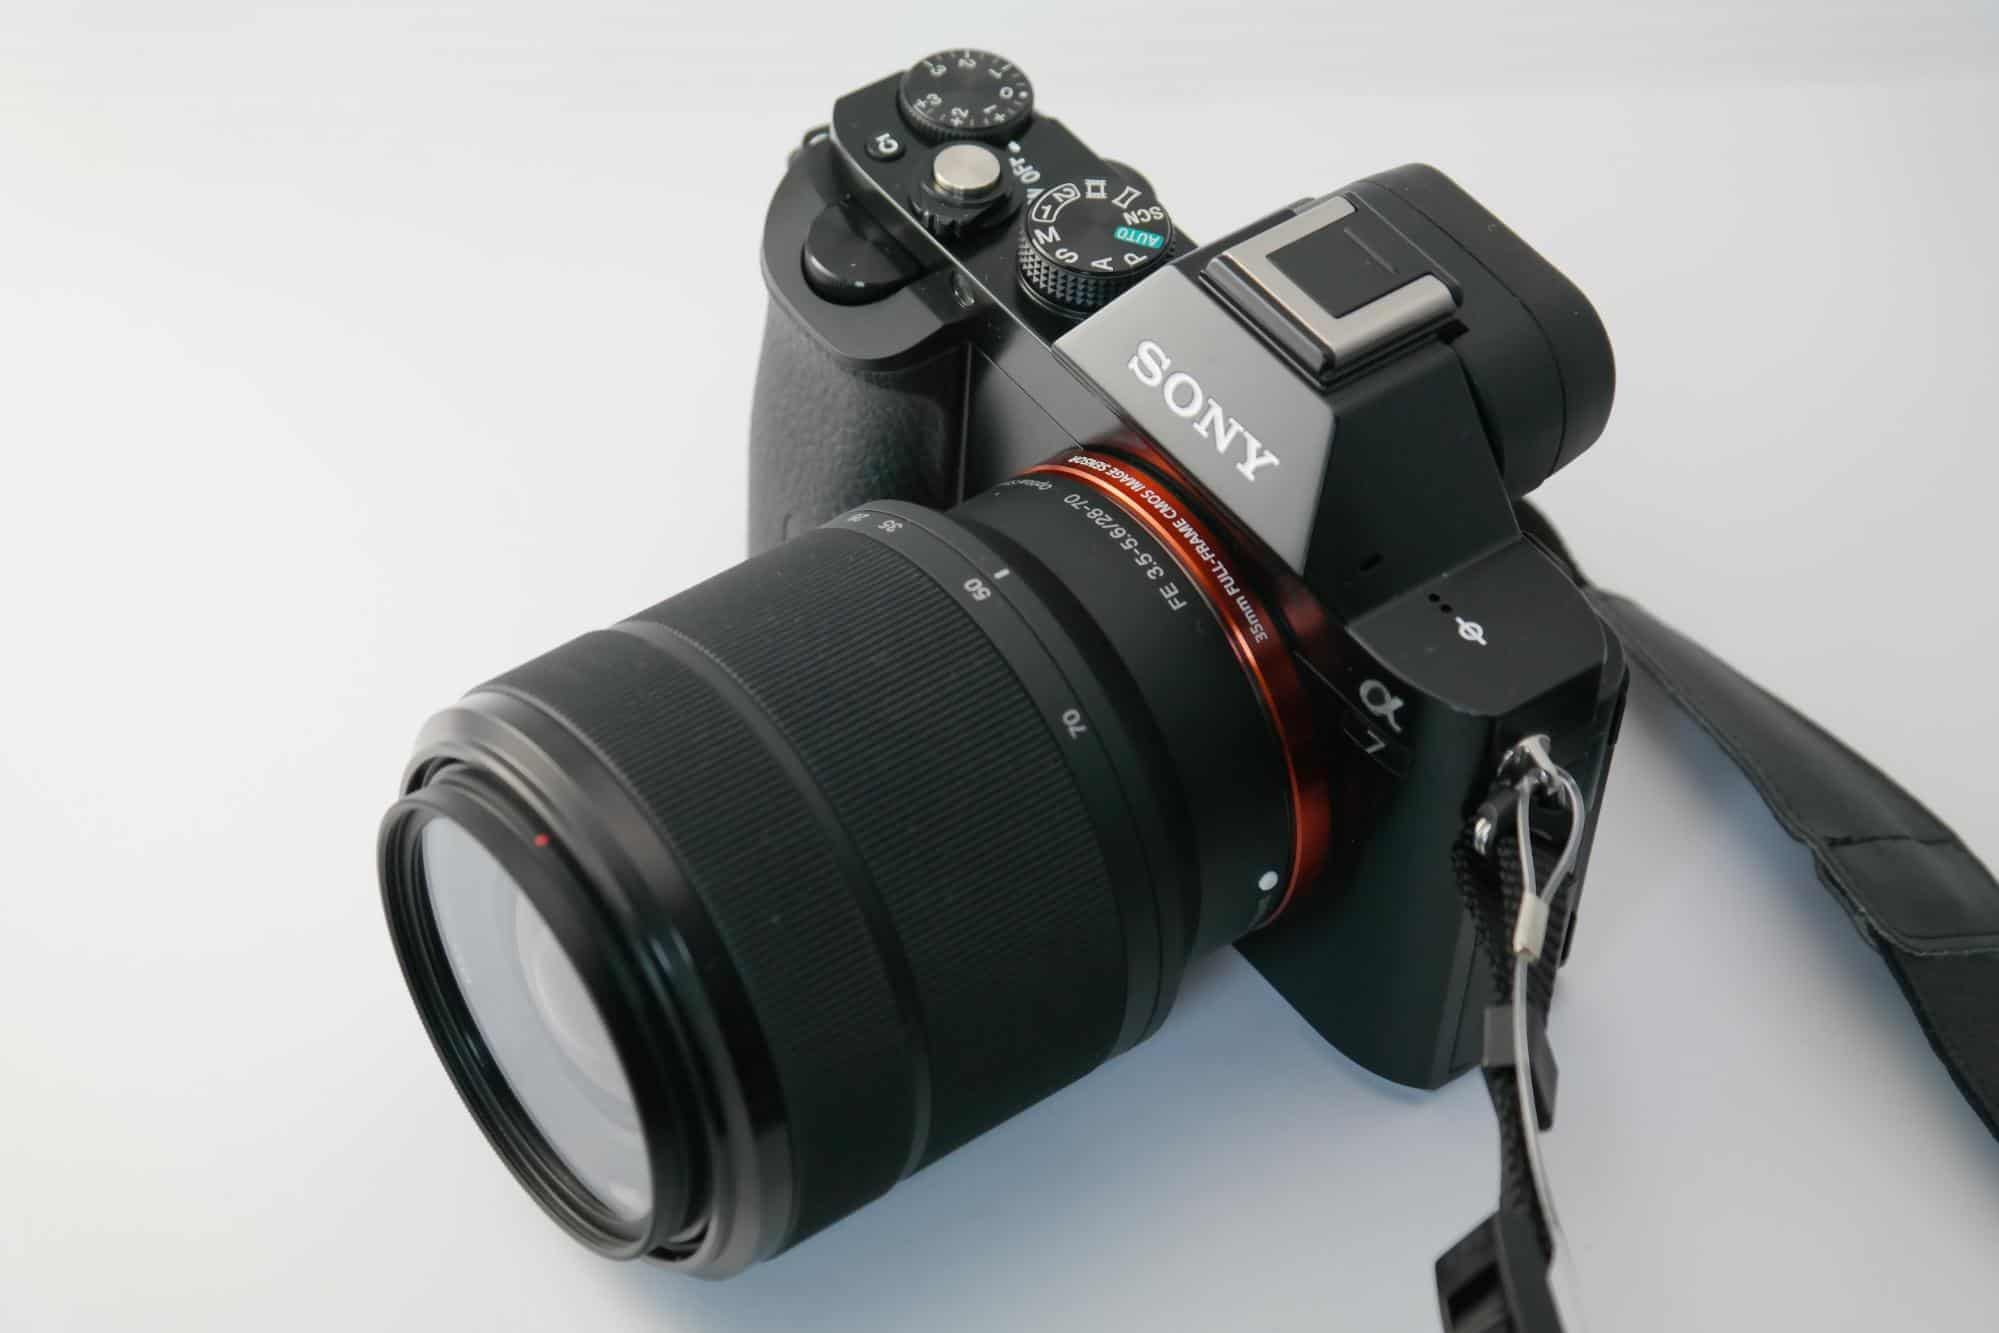 Best Lenses For Sony a7iii | Top Mirrorless Lens Reviews